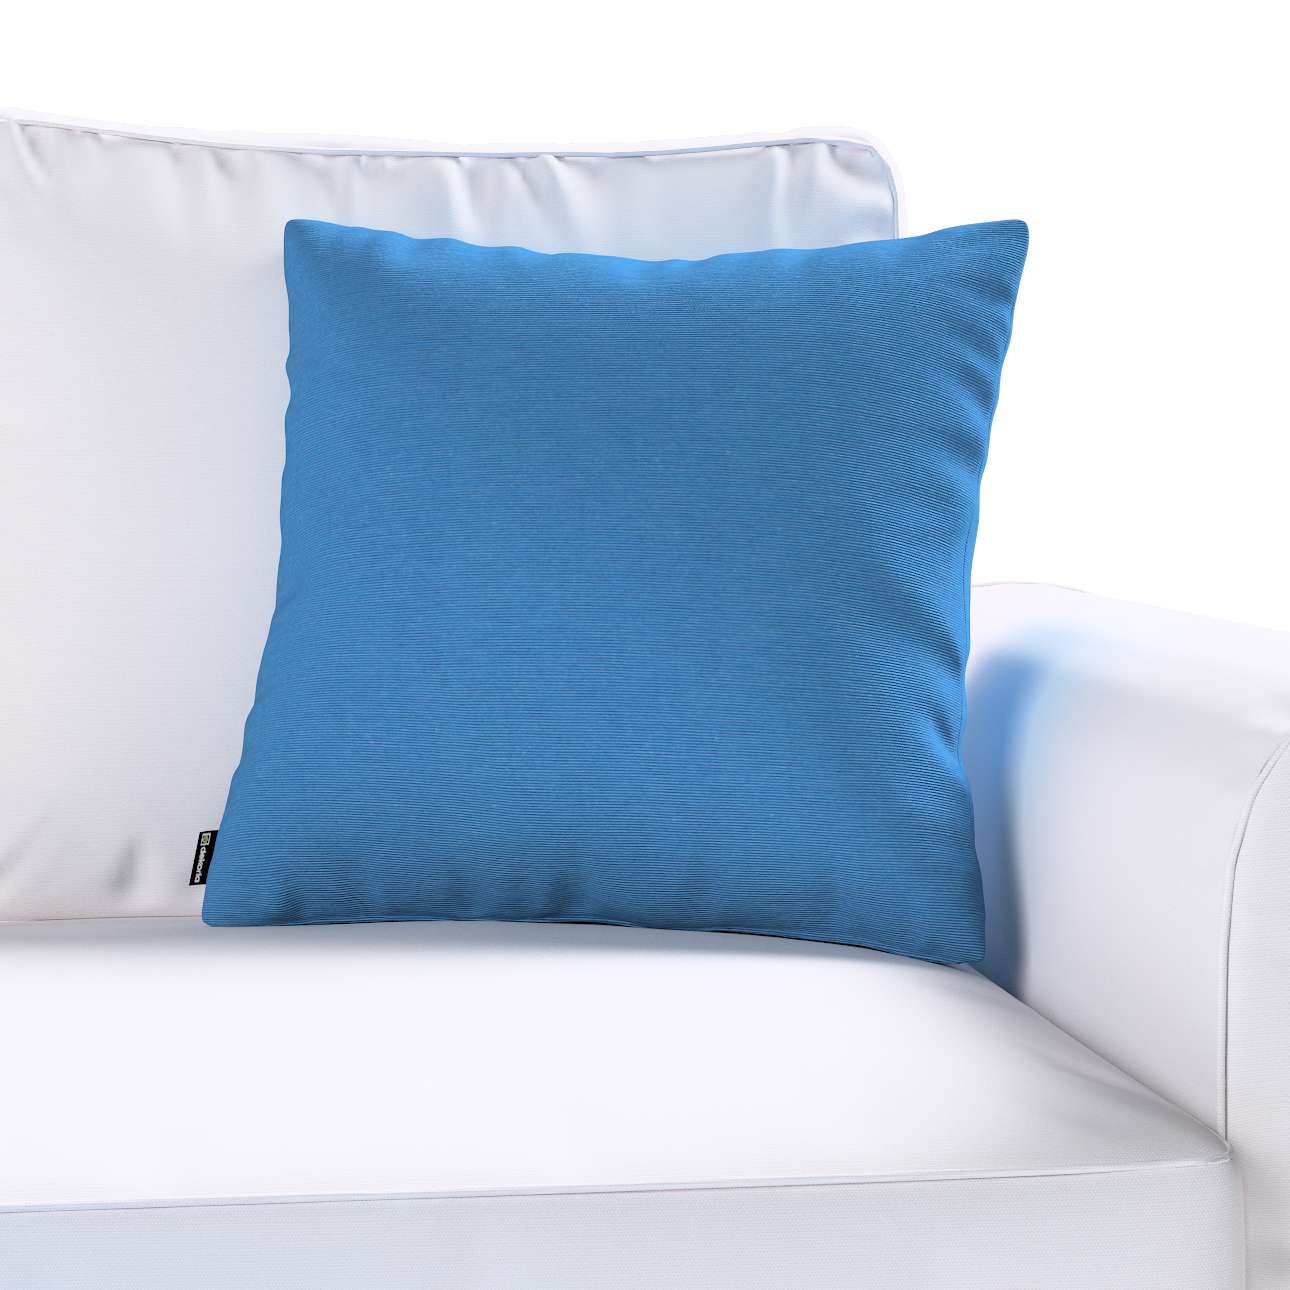 Kinga cushion cover 43 x 43 cm (17 x 17 inch) in collection Jupiter, fabric: 127-61